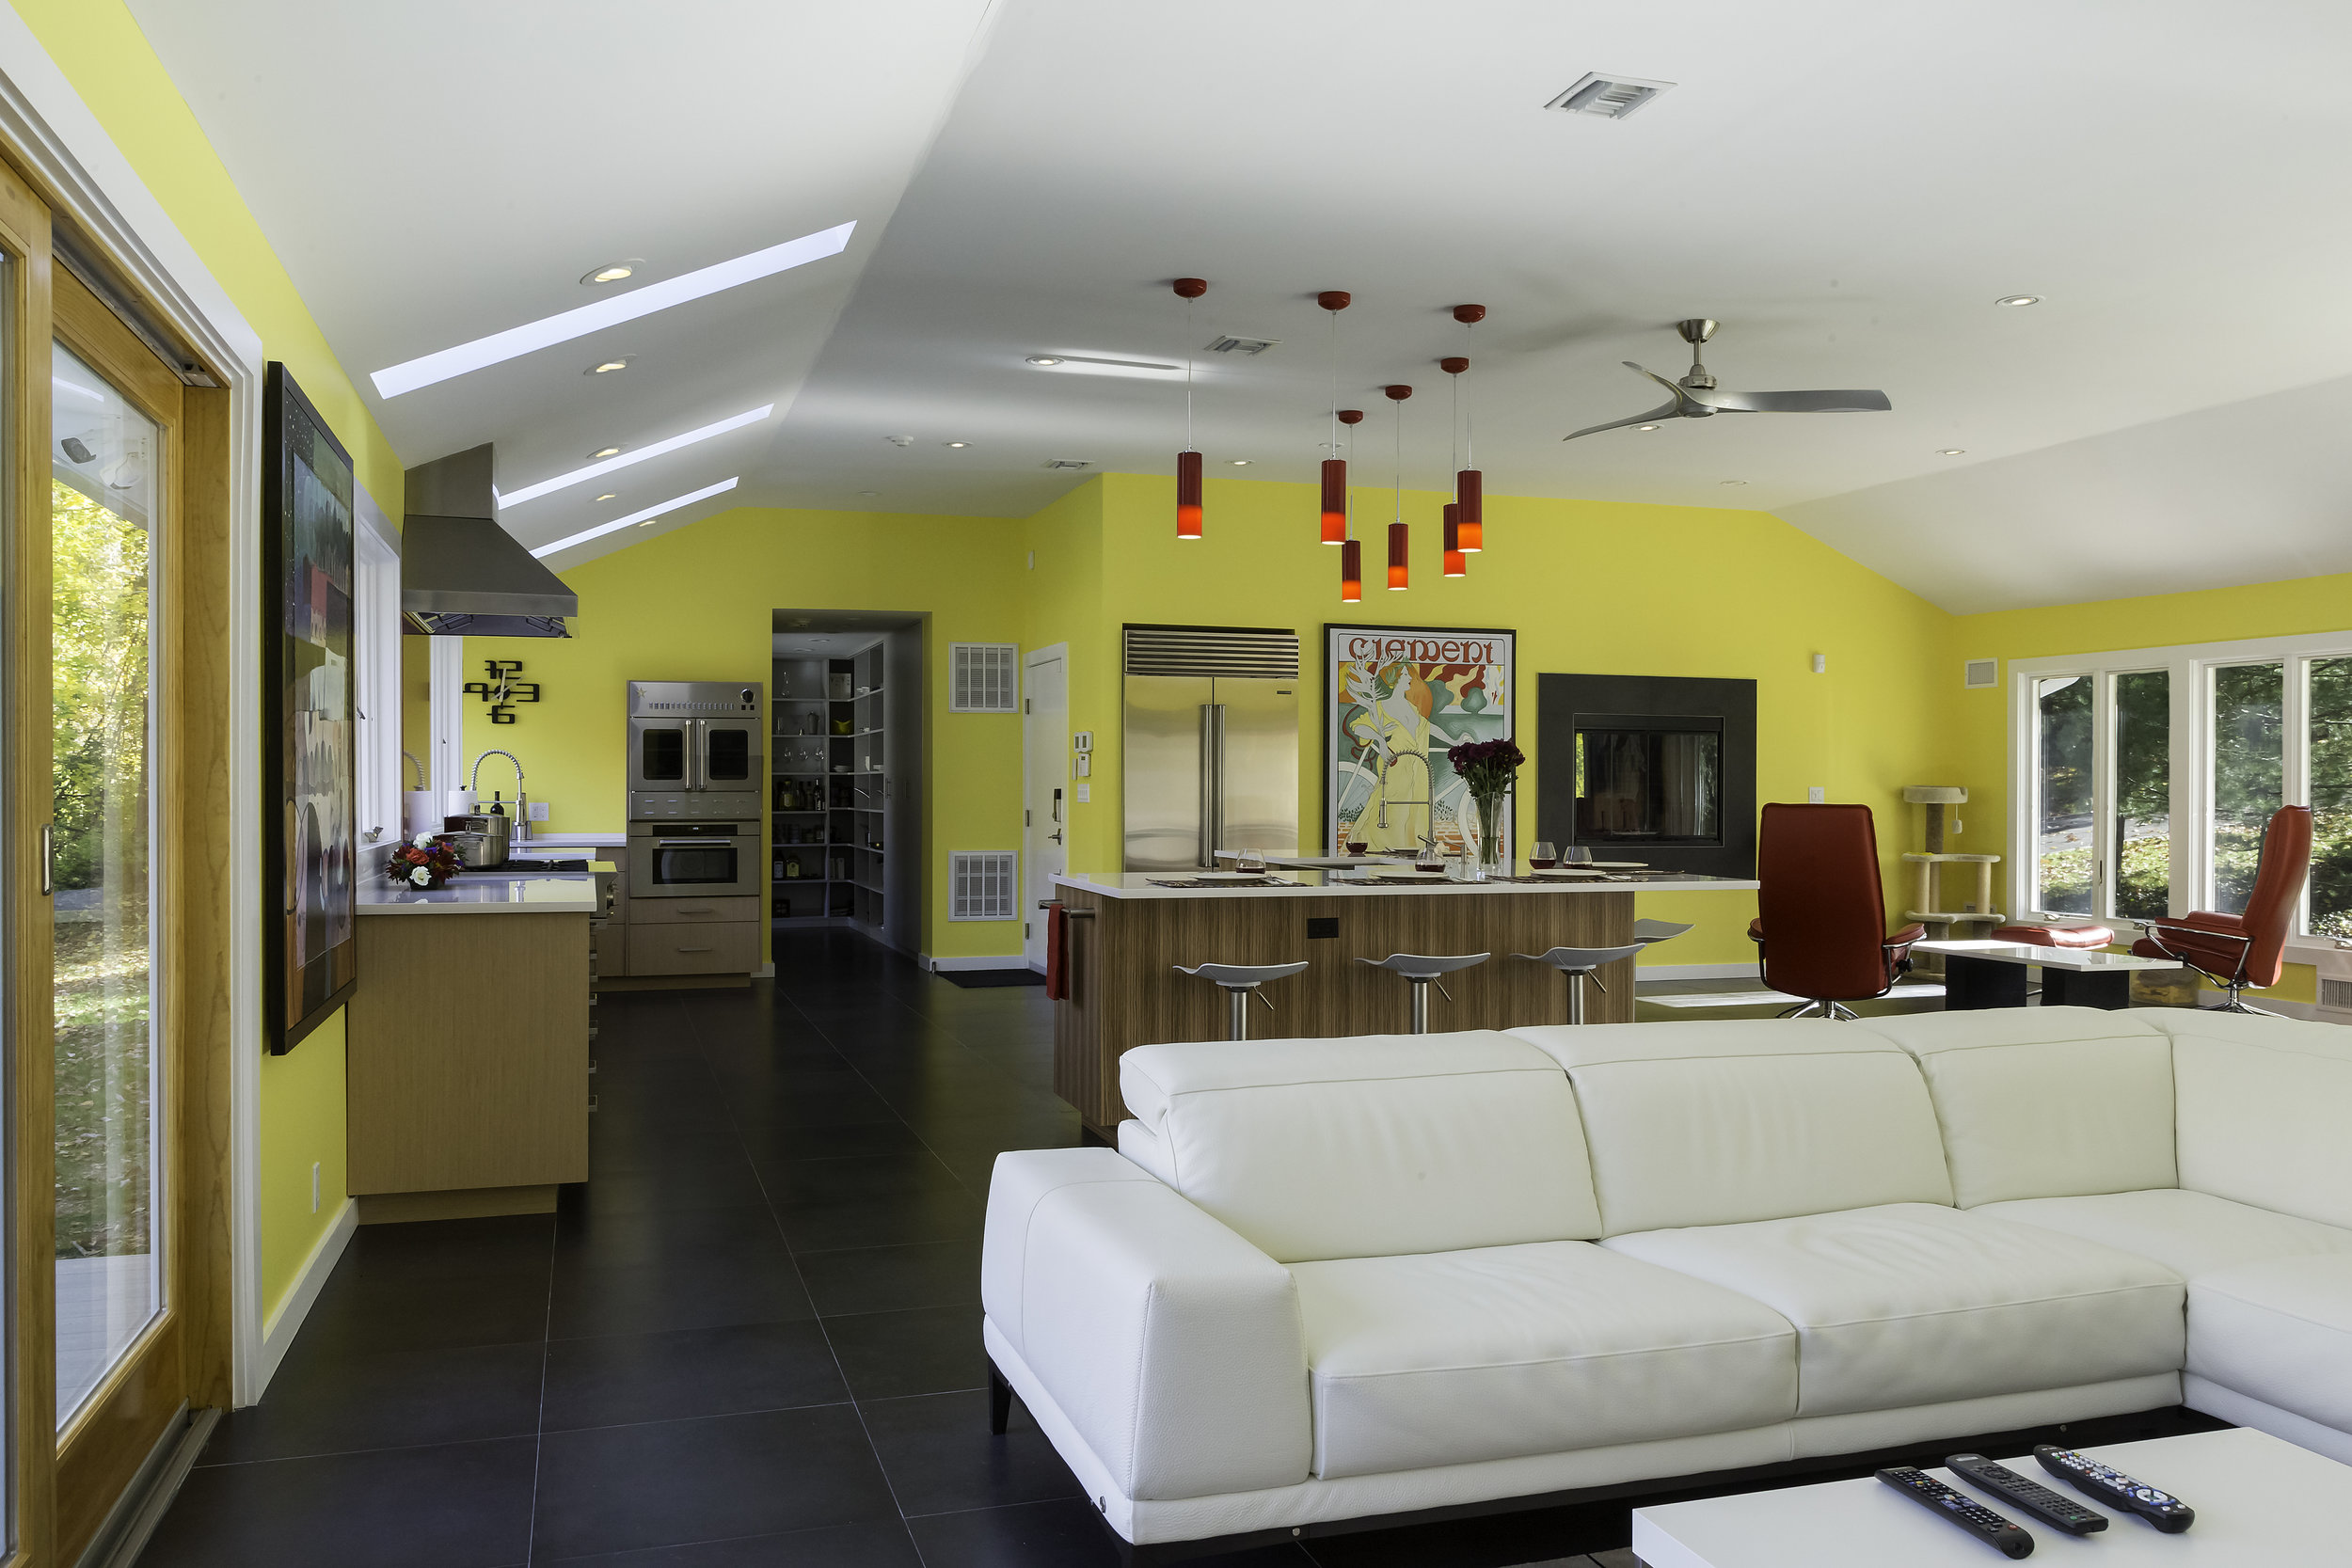 Contemporary style kitchen with high ceiling